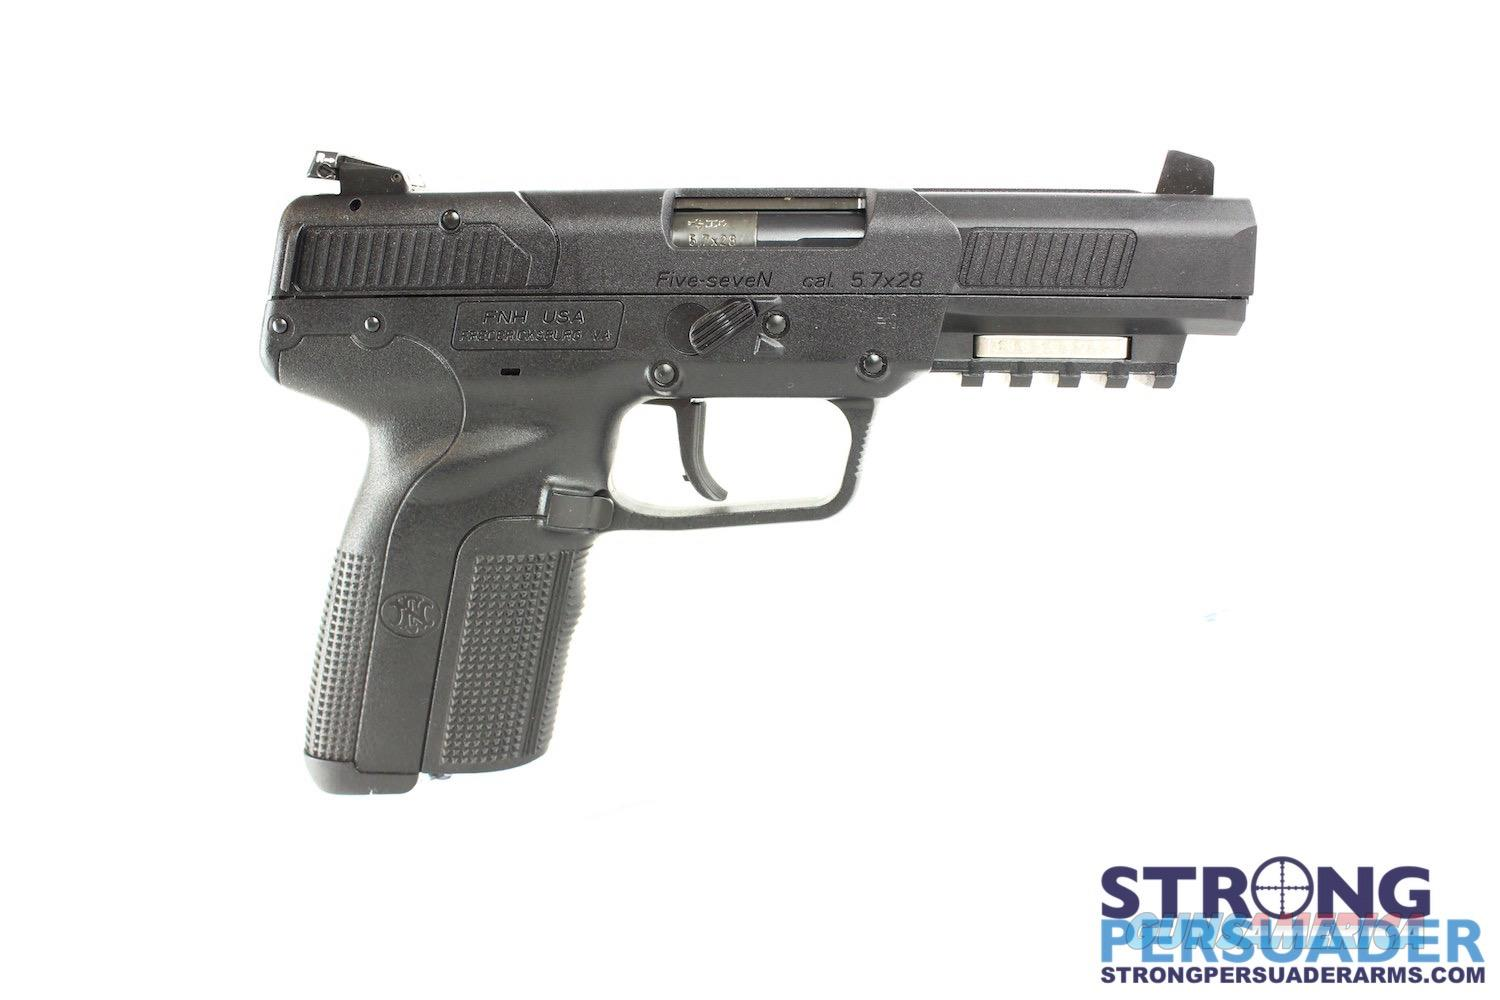 Fn Herstal Five Seven  MK II 5.7 x 28 Black - 3 mags - Adj Sights  Guns > Pistols > FNH - Fabrique Nationale (FN) Pistols > FiveSeven